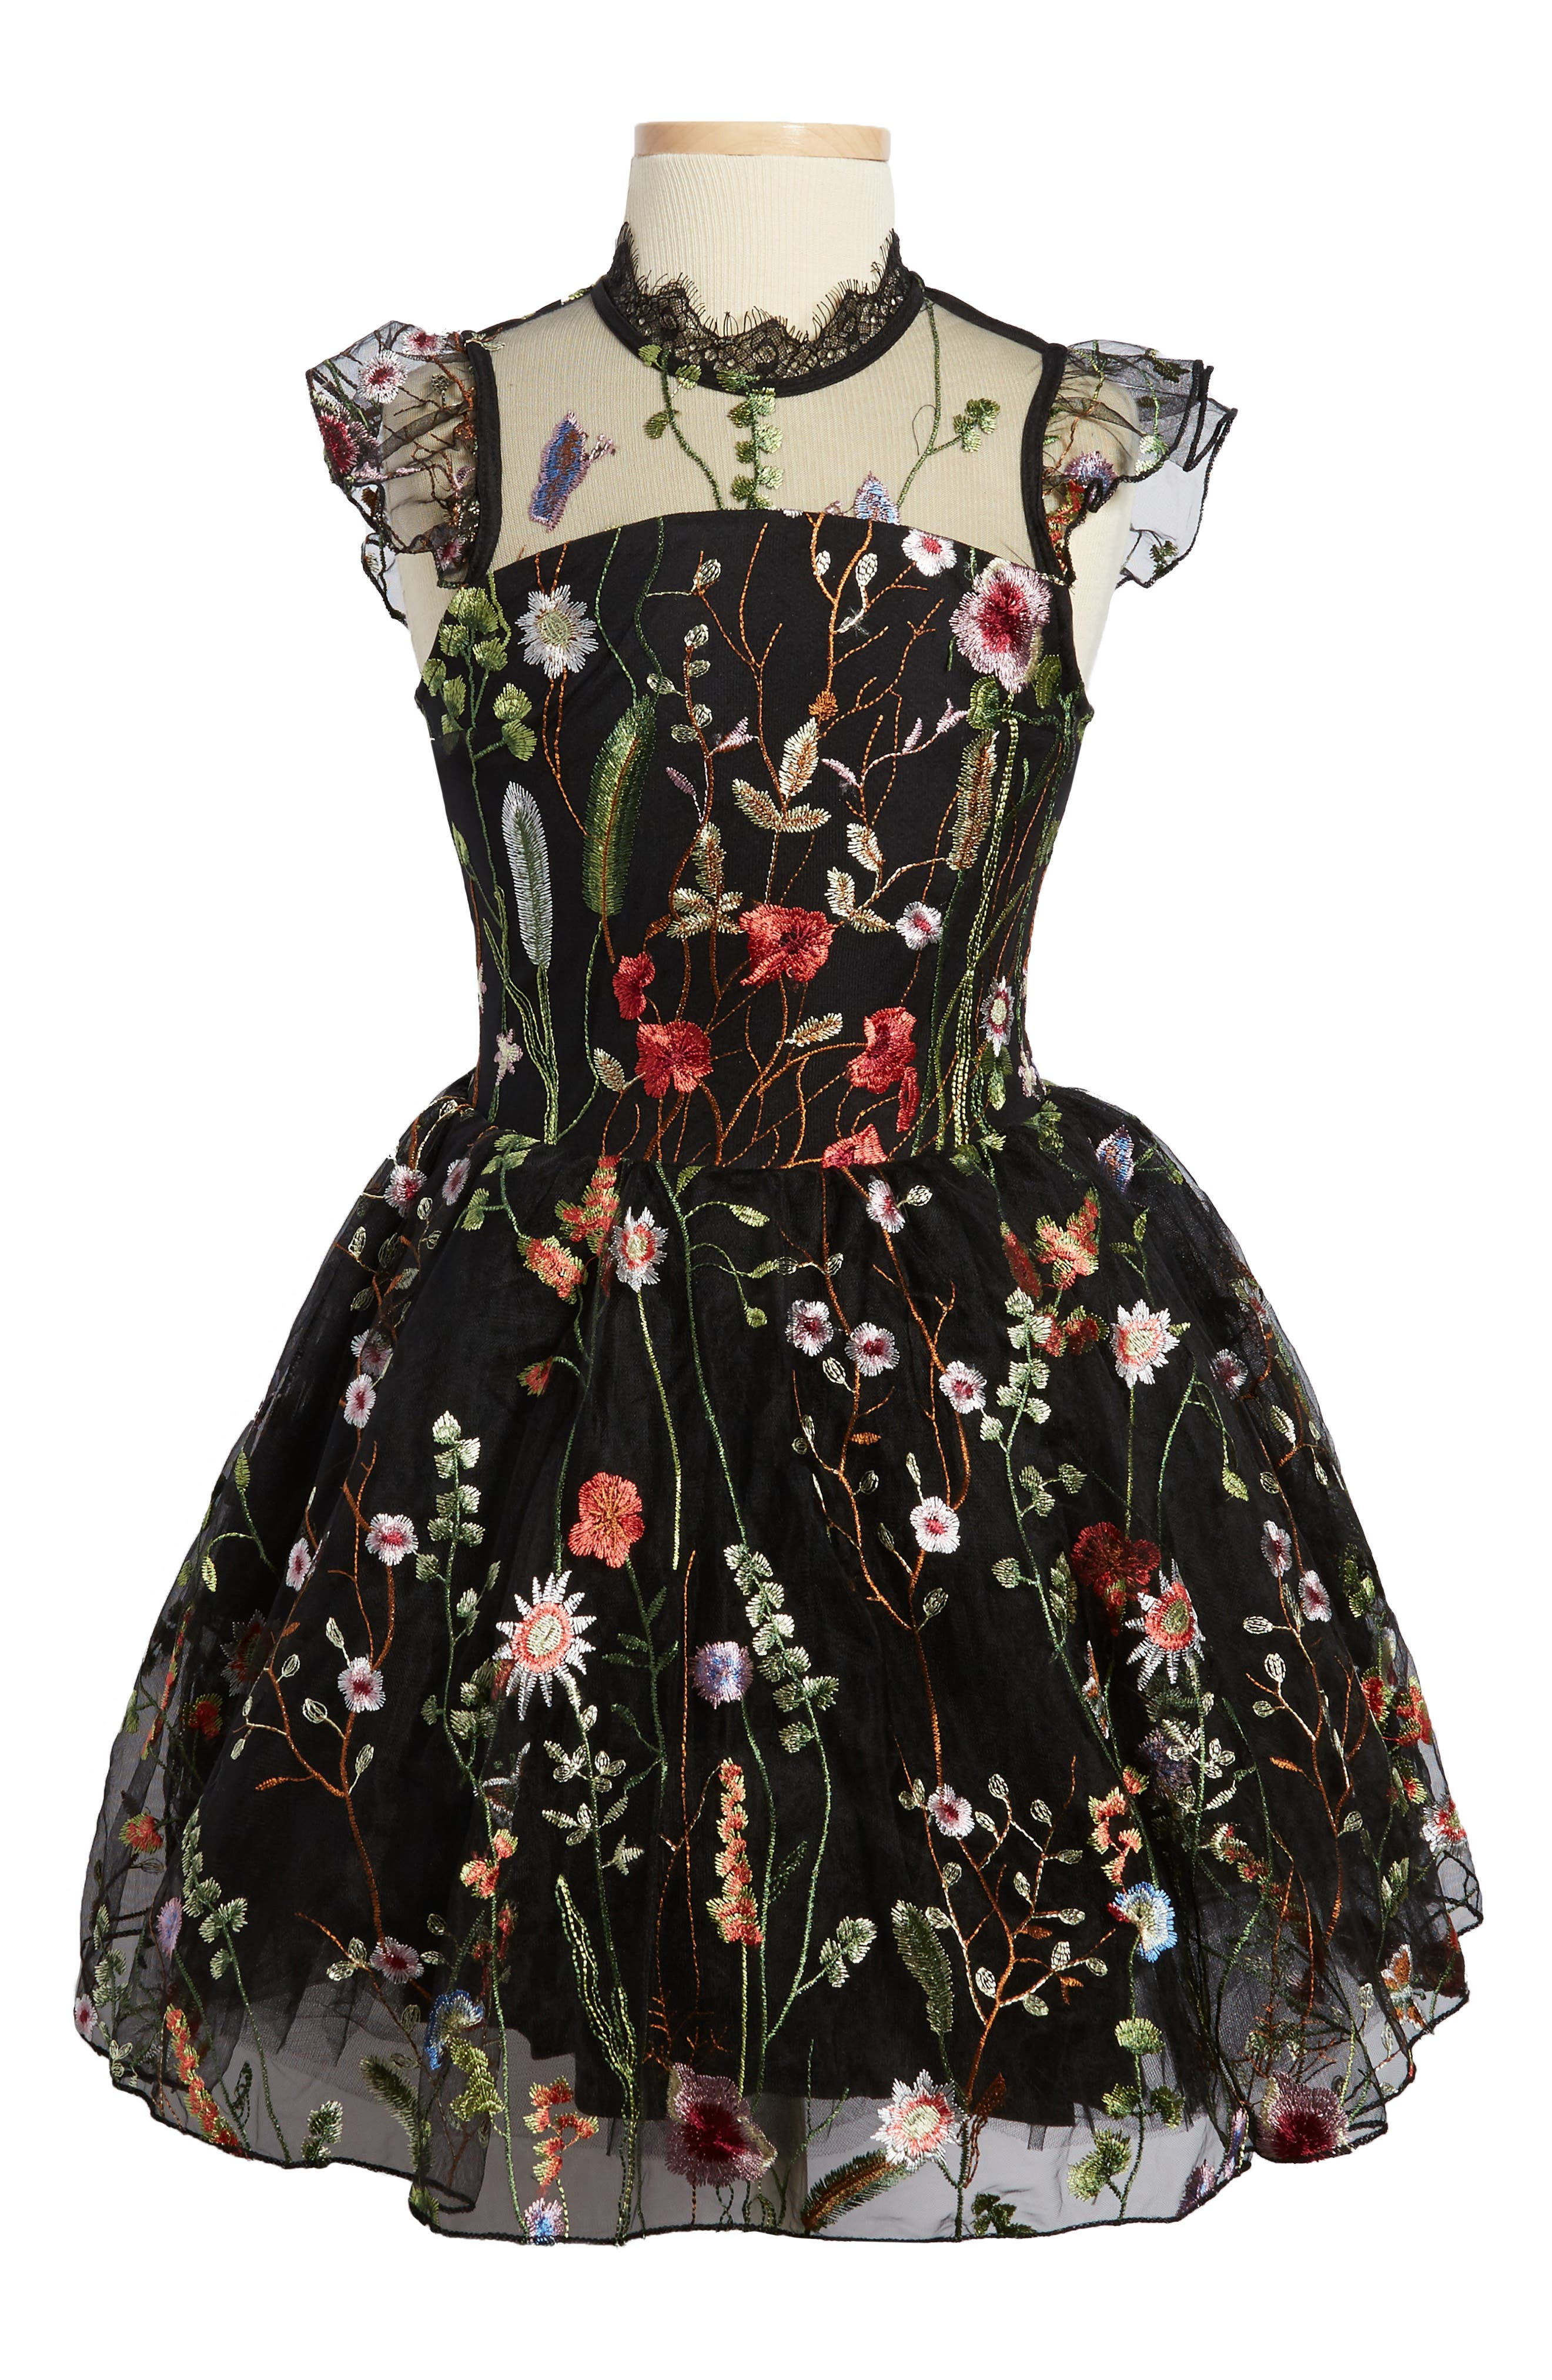 Charisse Embroidered Floral Dress,                             Main thumbnail 1, color,                             001